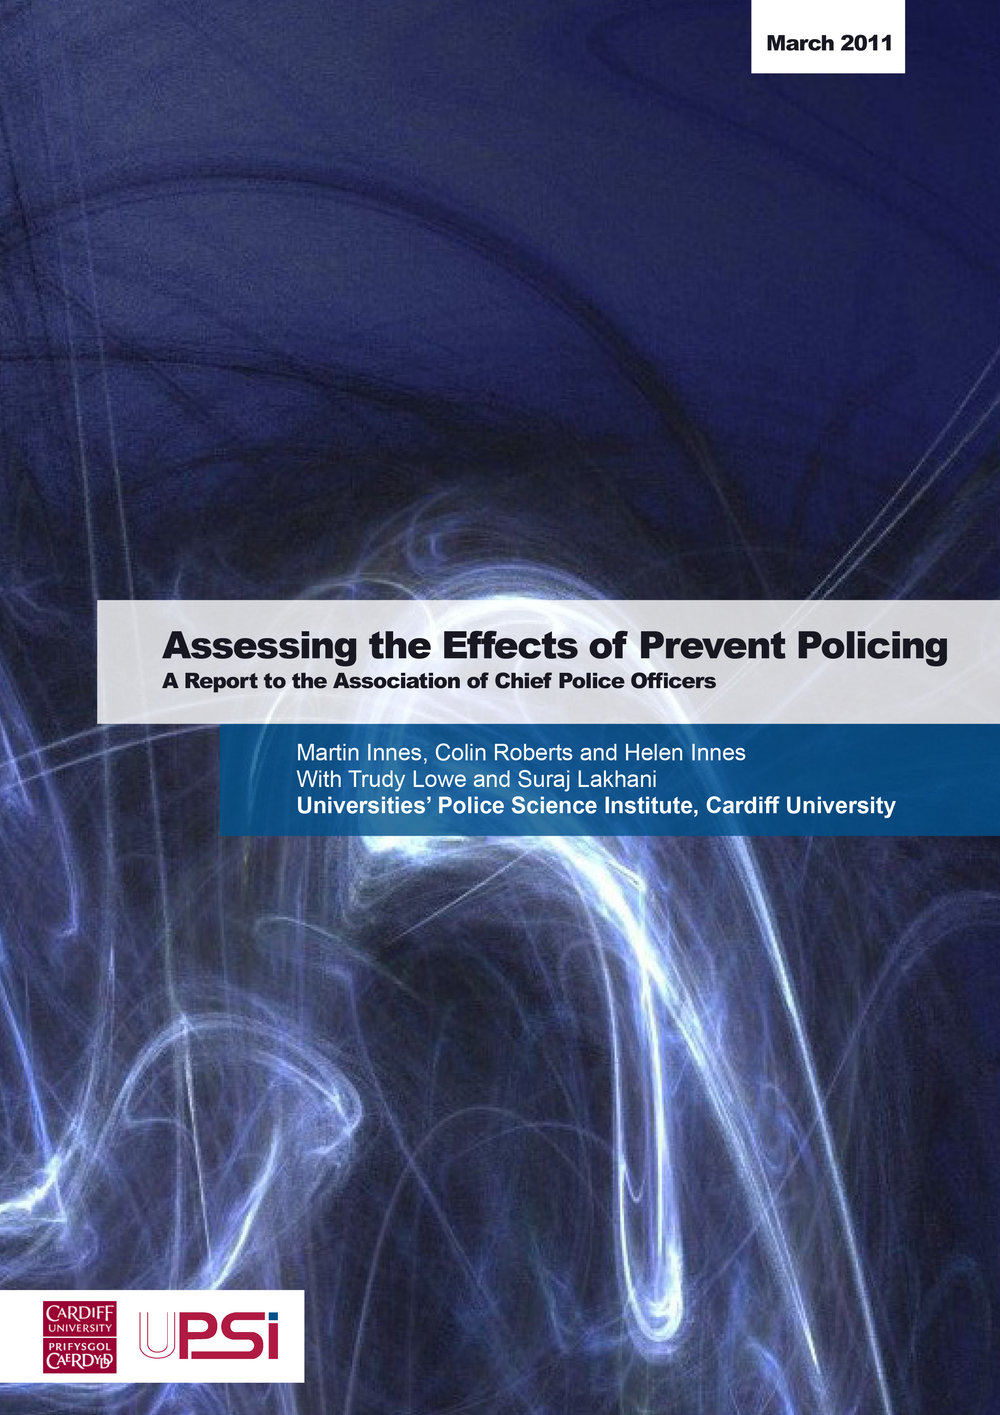 Assessing the Effects of Prevent Policing. A Report to ACPO